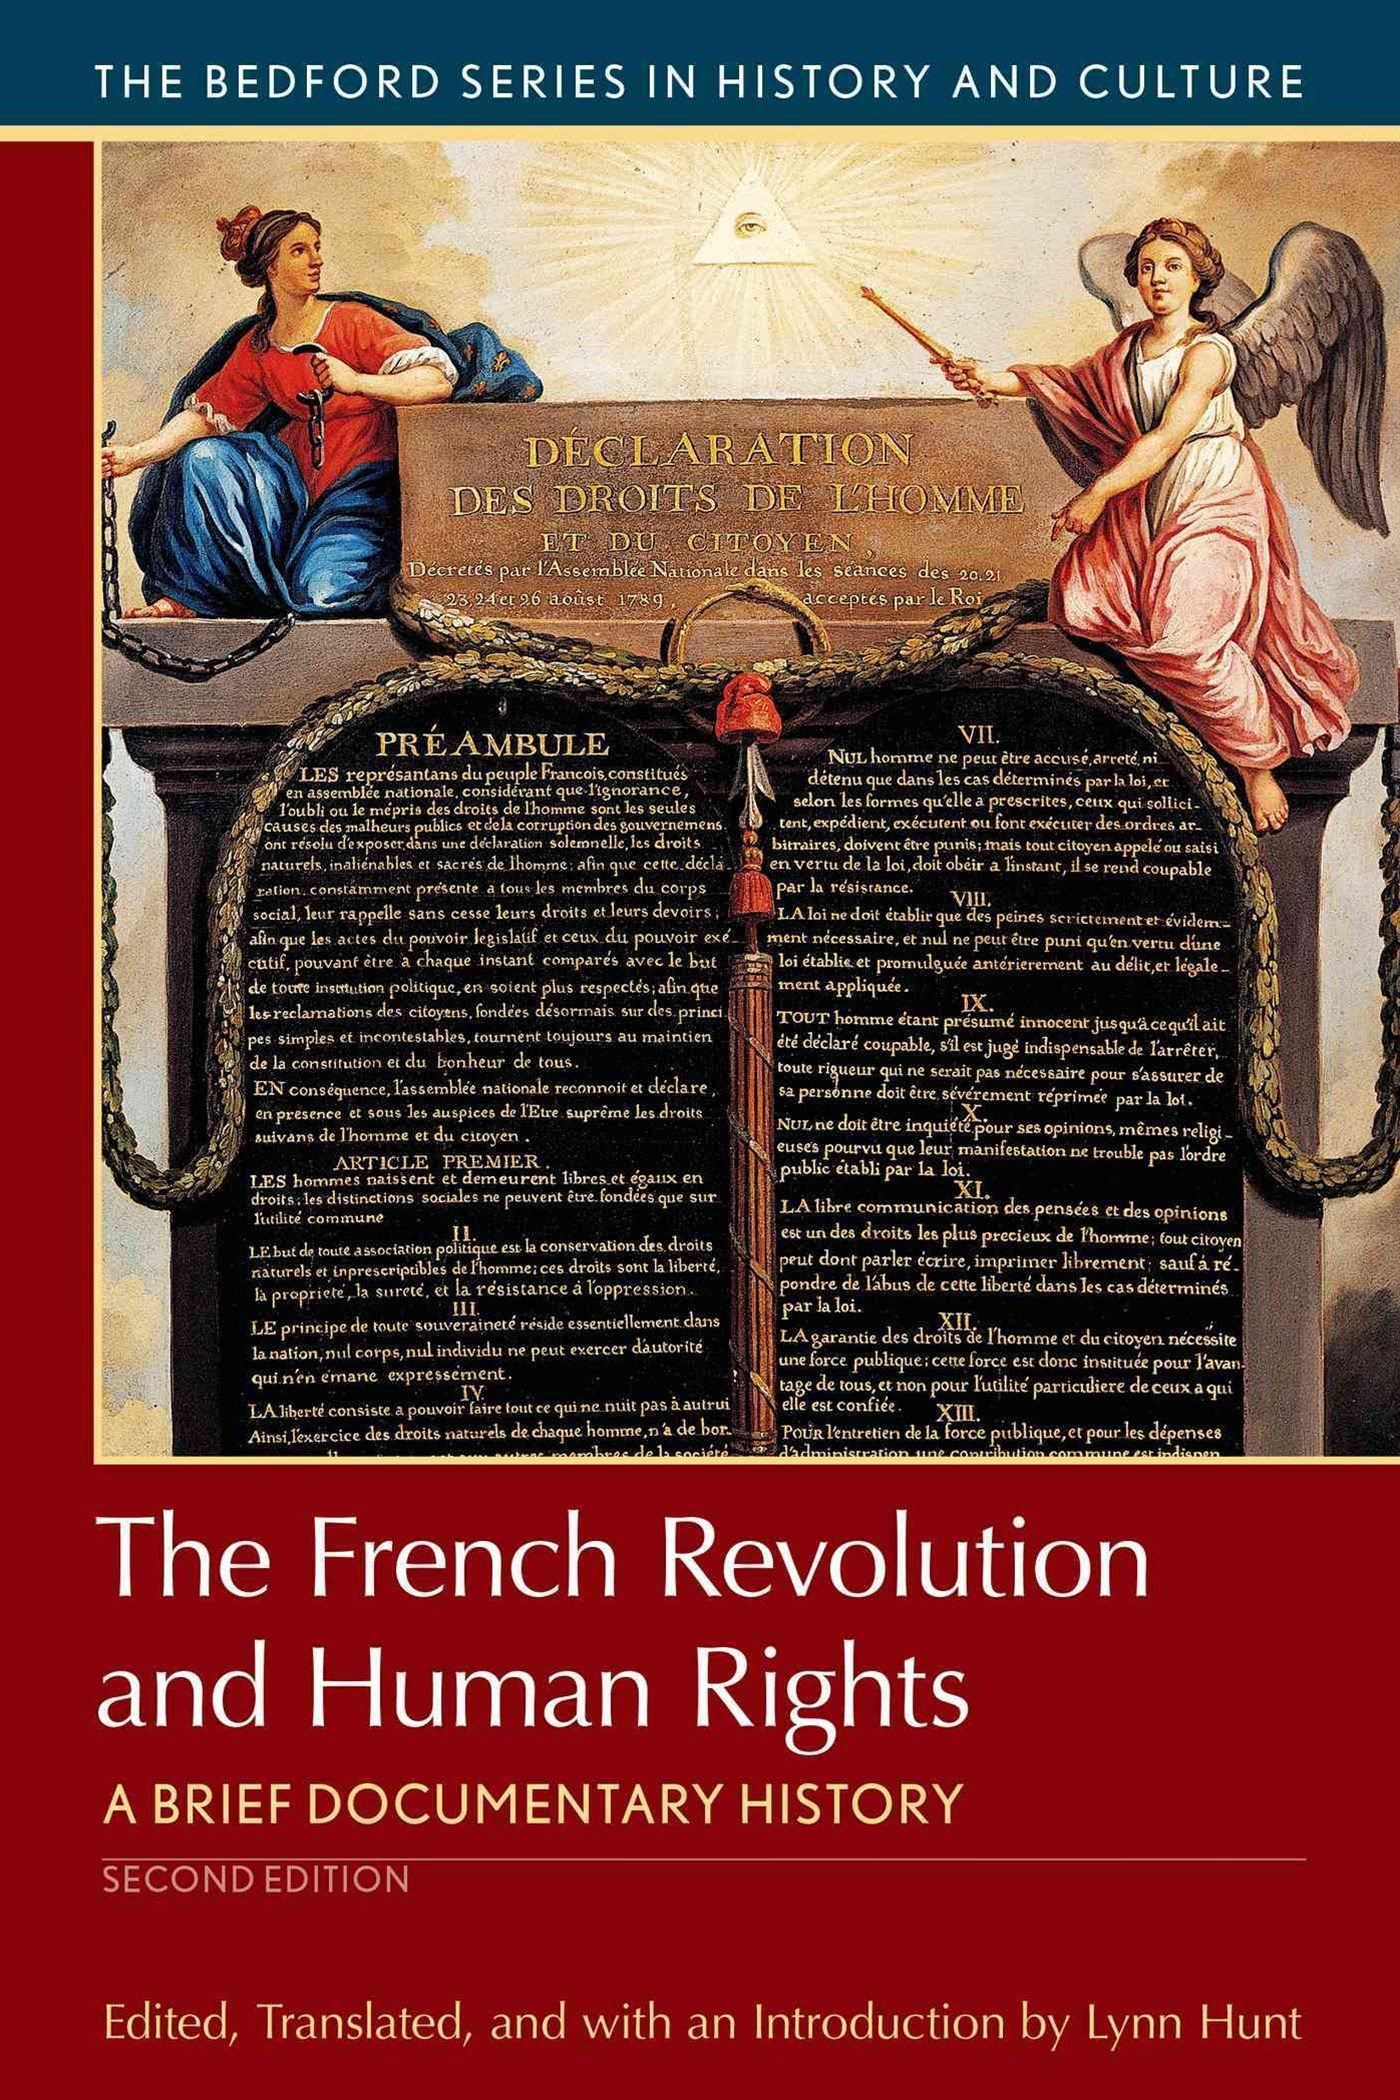 The French Revolution and Human Rights